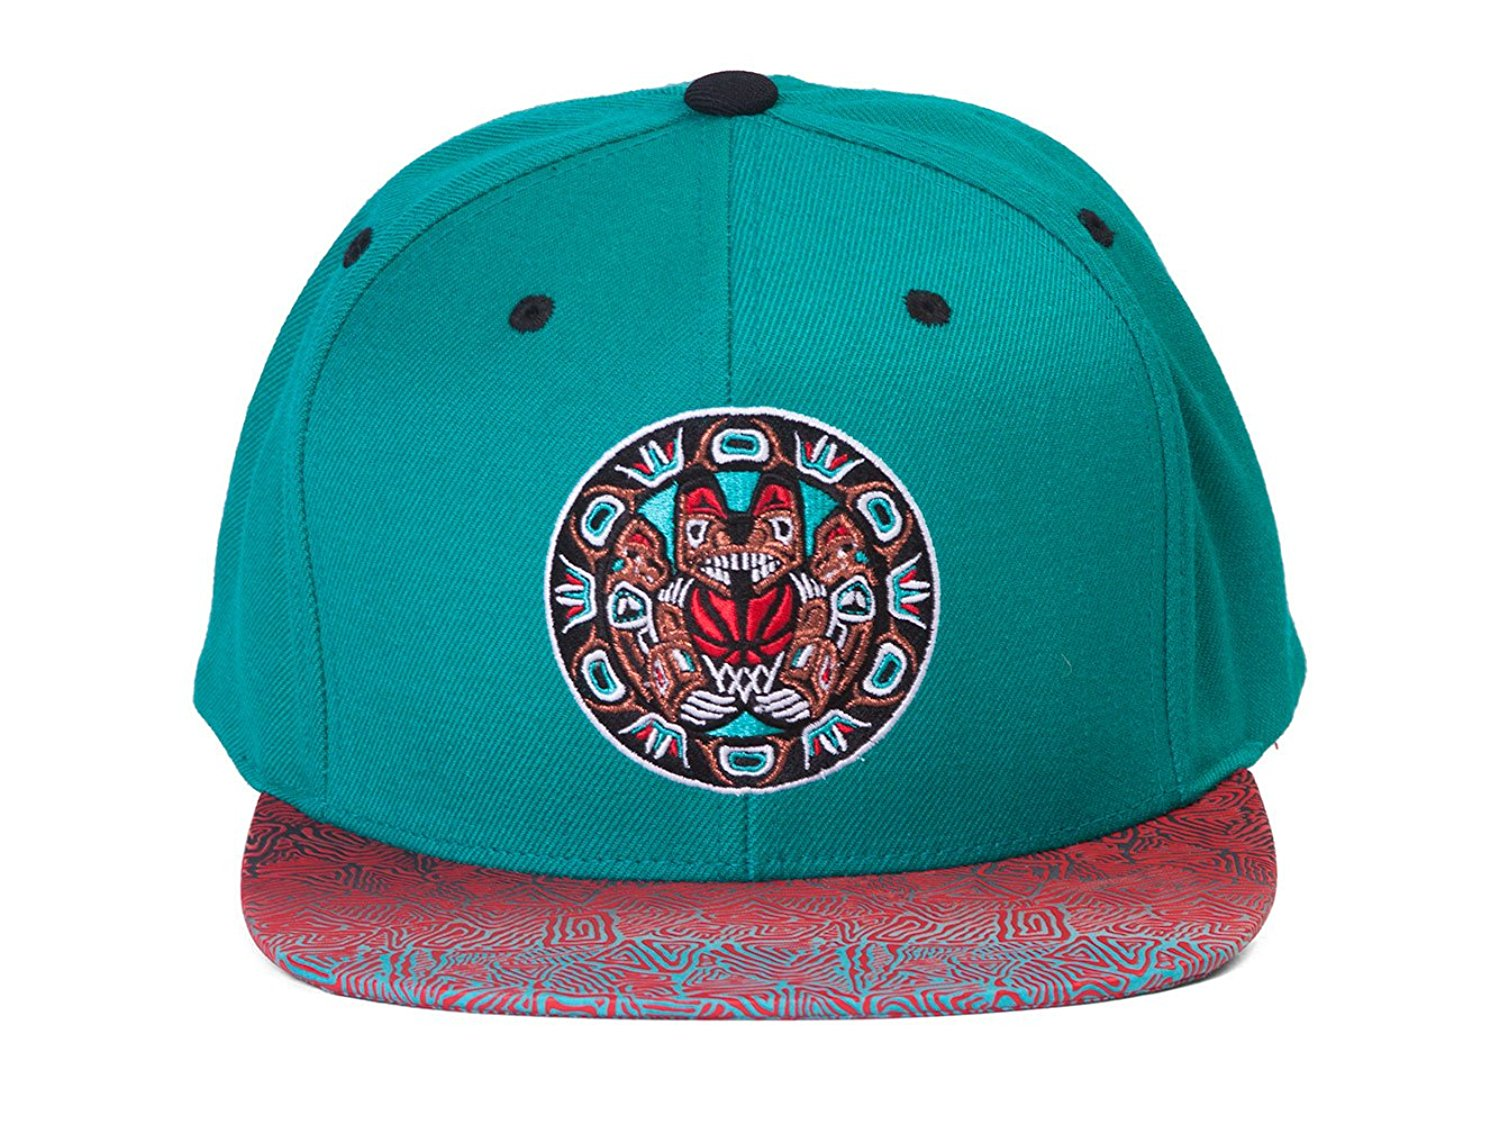 e866db9a9da Get Quotations · Mitchell   Ness Vintage Vancouver Grizzlies Court Vision  Snapback